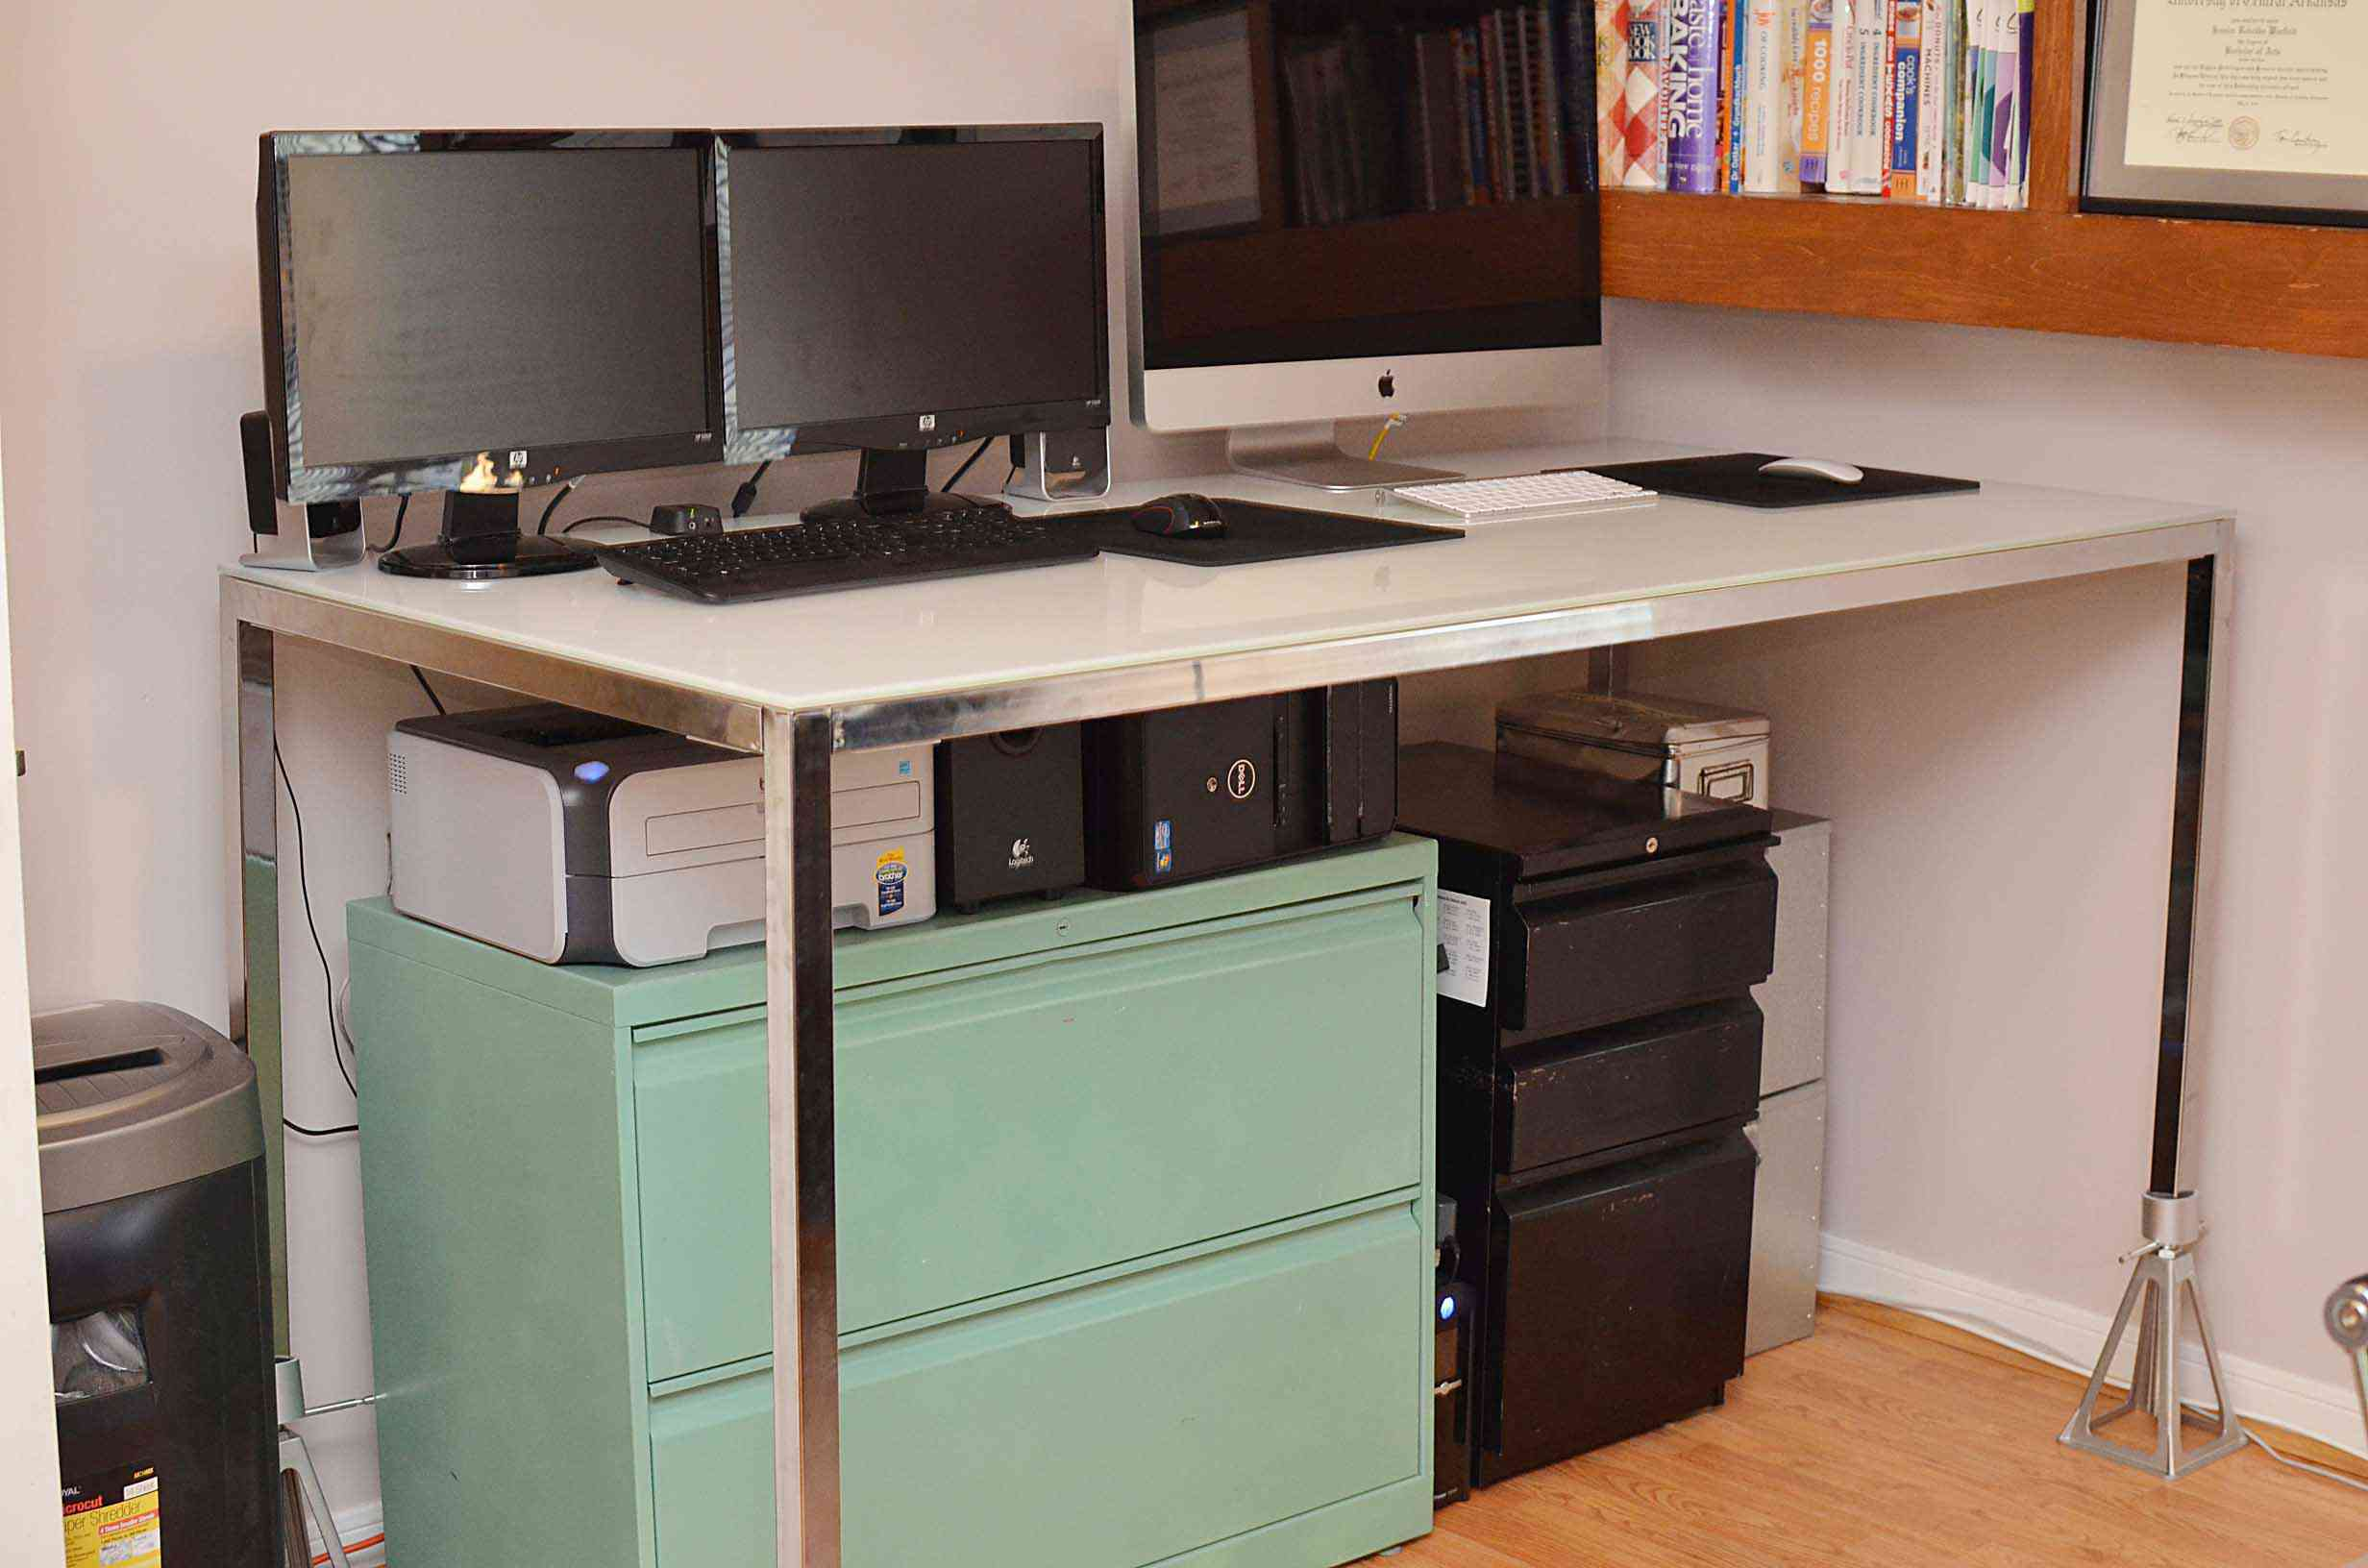 A tall standing desk with three monitors and a file cabinet underneath.